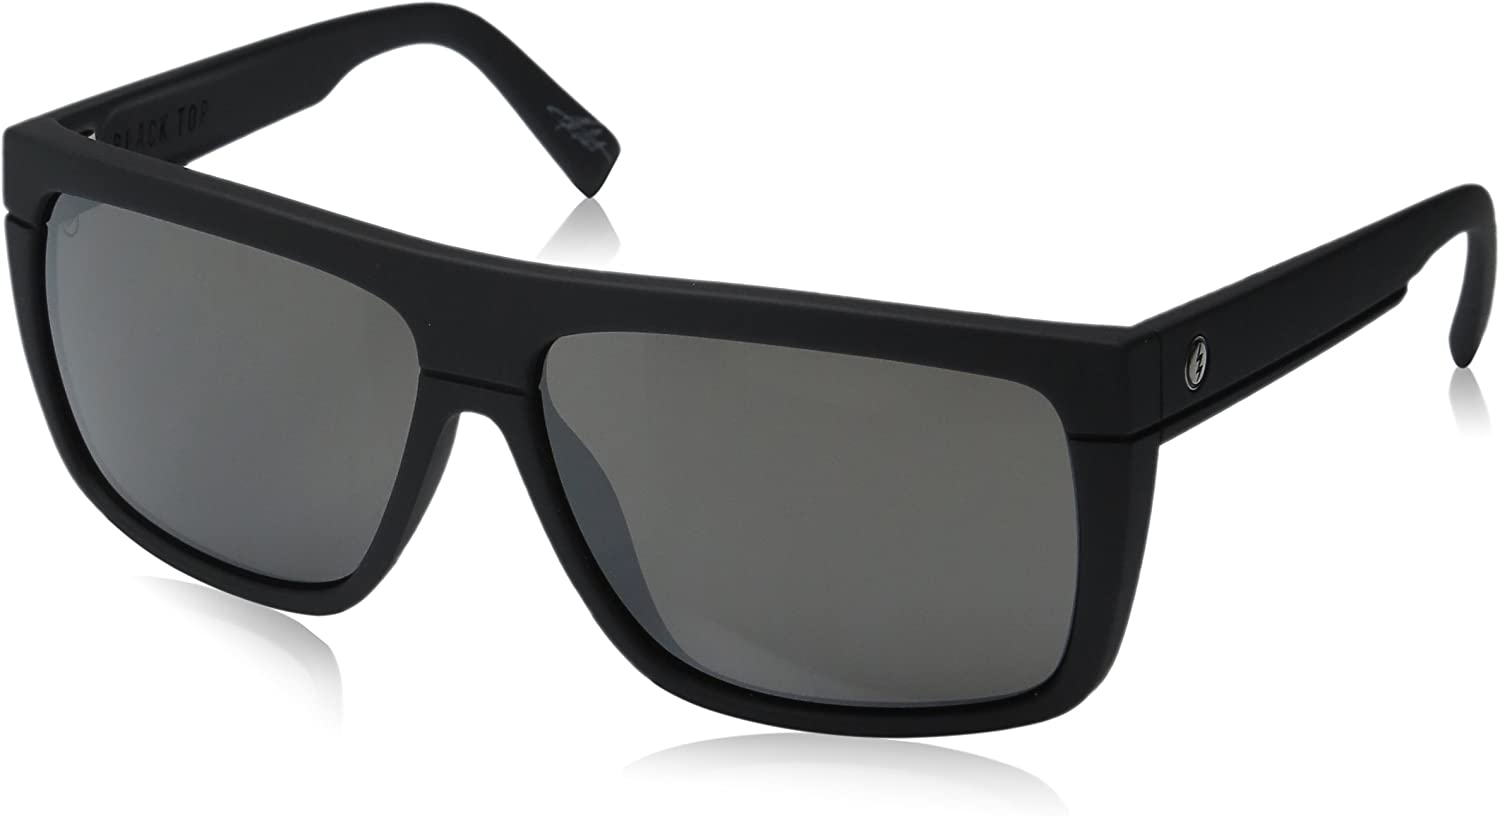 Electric Eyewear Men's Black Top